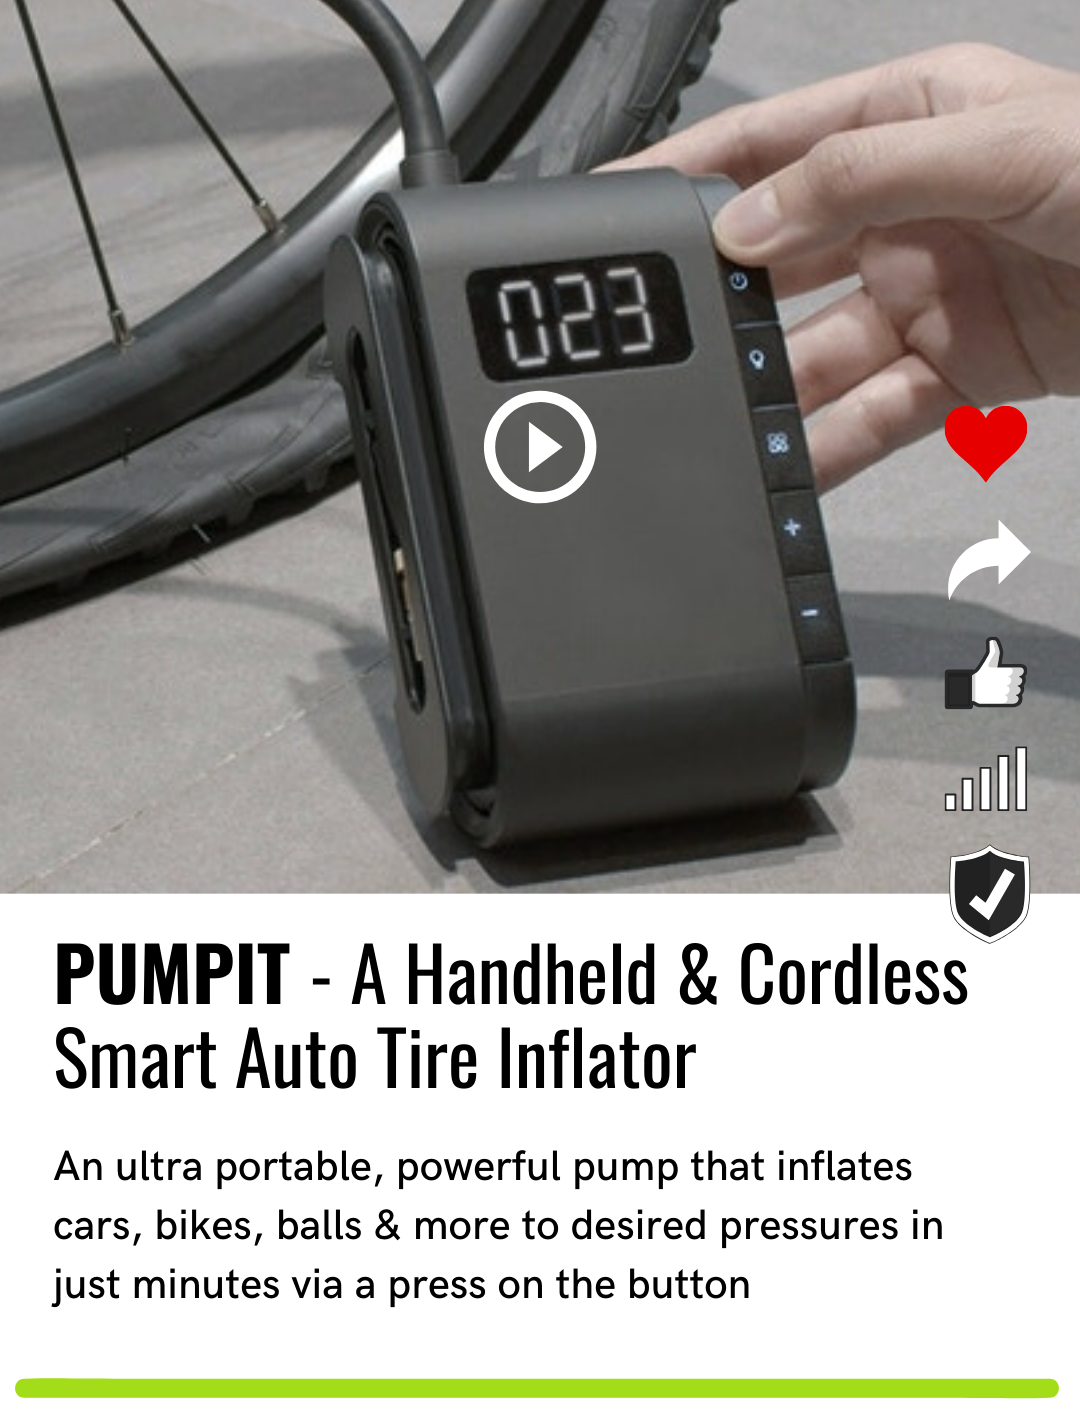 PUMPIT - A Handheld & Cordless Smart Auto Tire Inflator